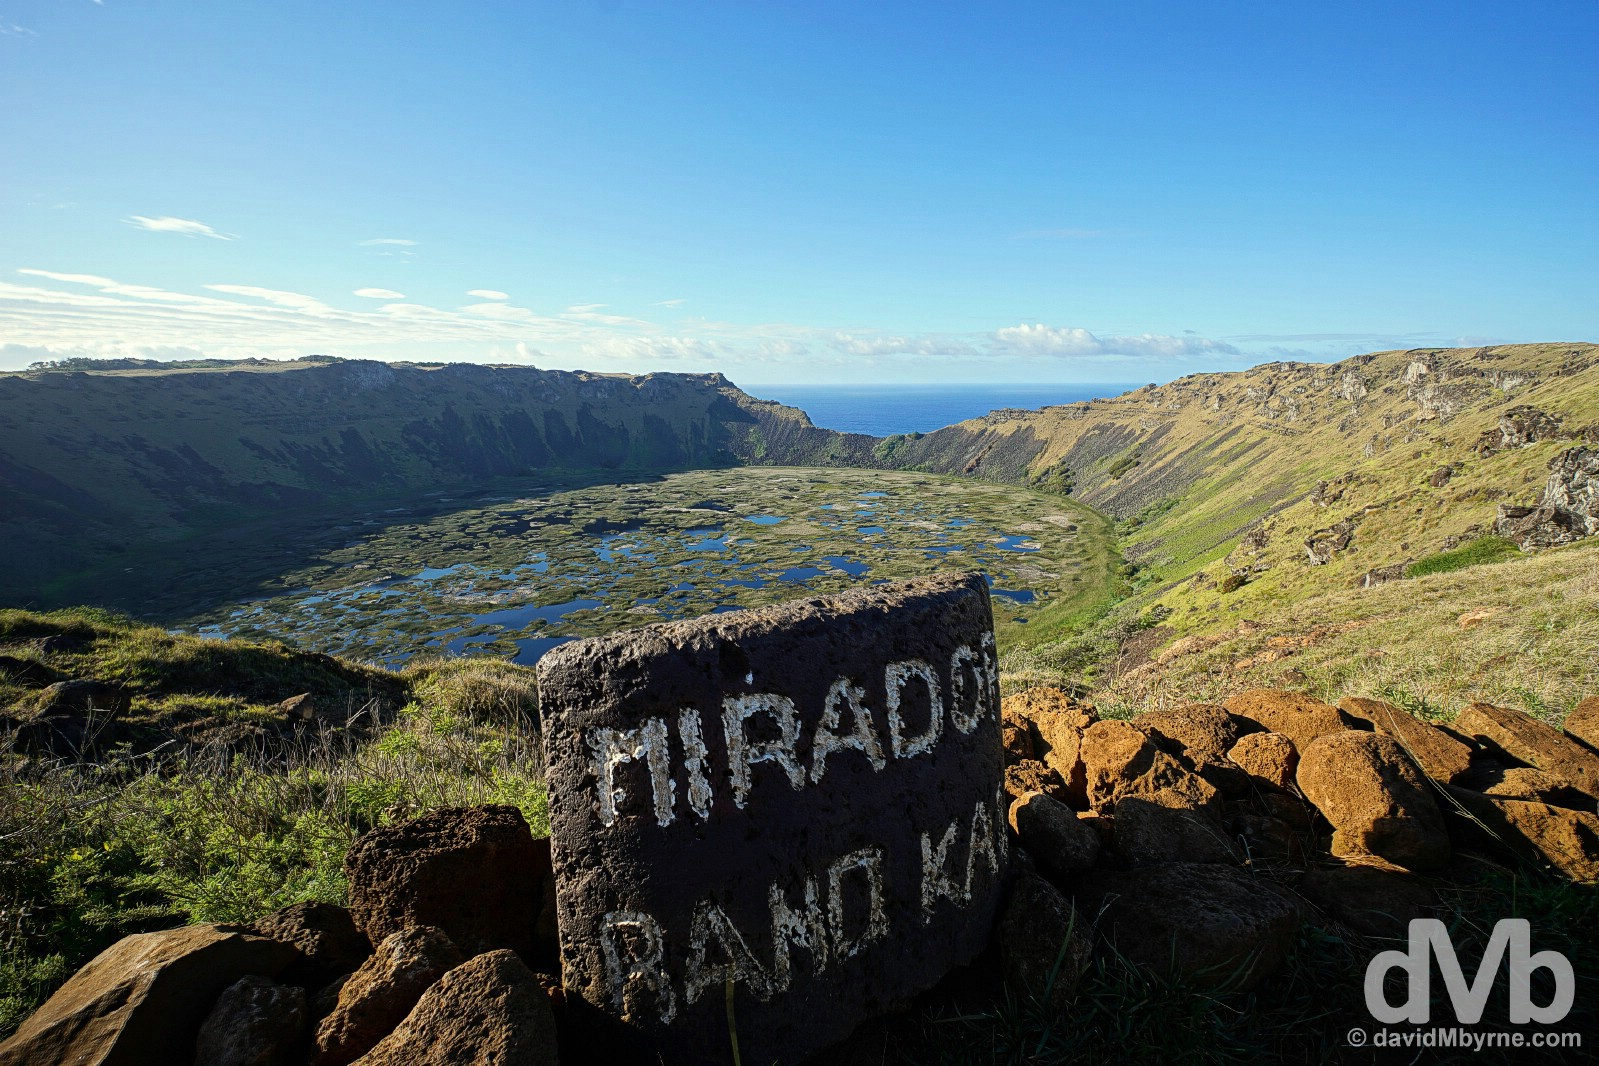 Overlooking Rano Kau on Easter Island, Chile. October 3, 2016.